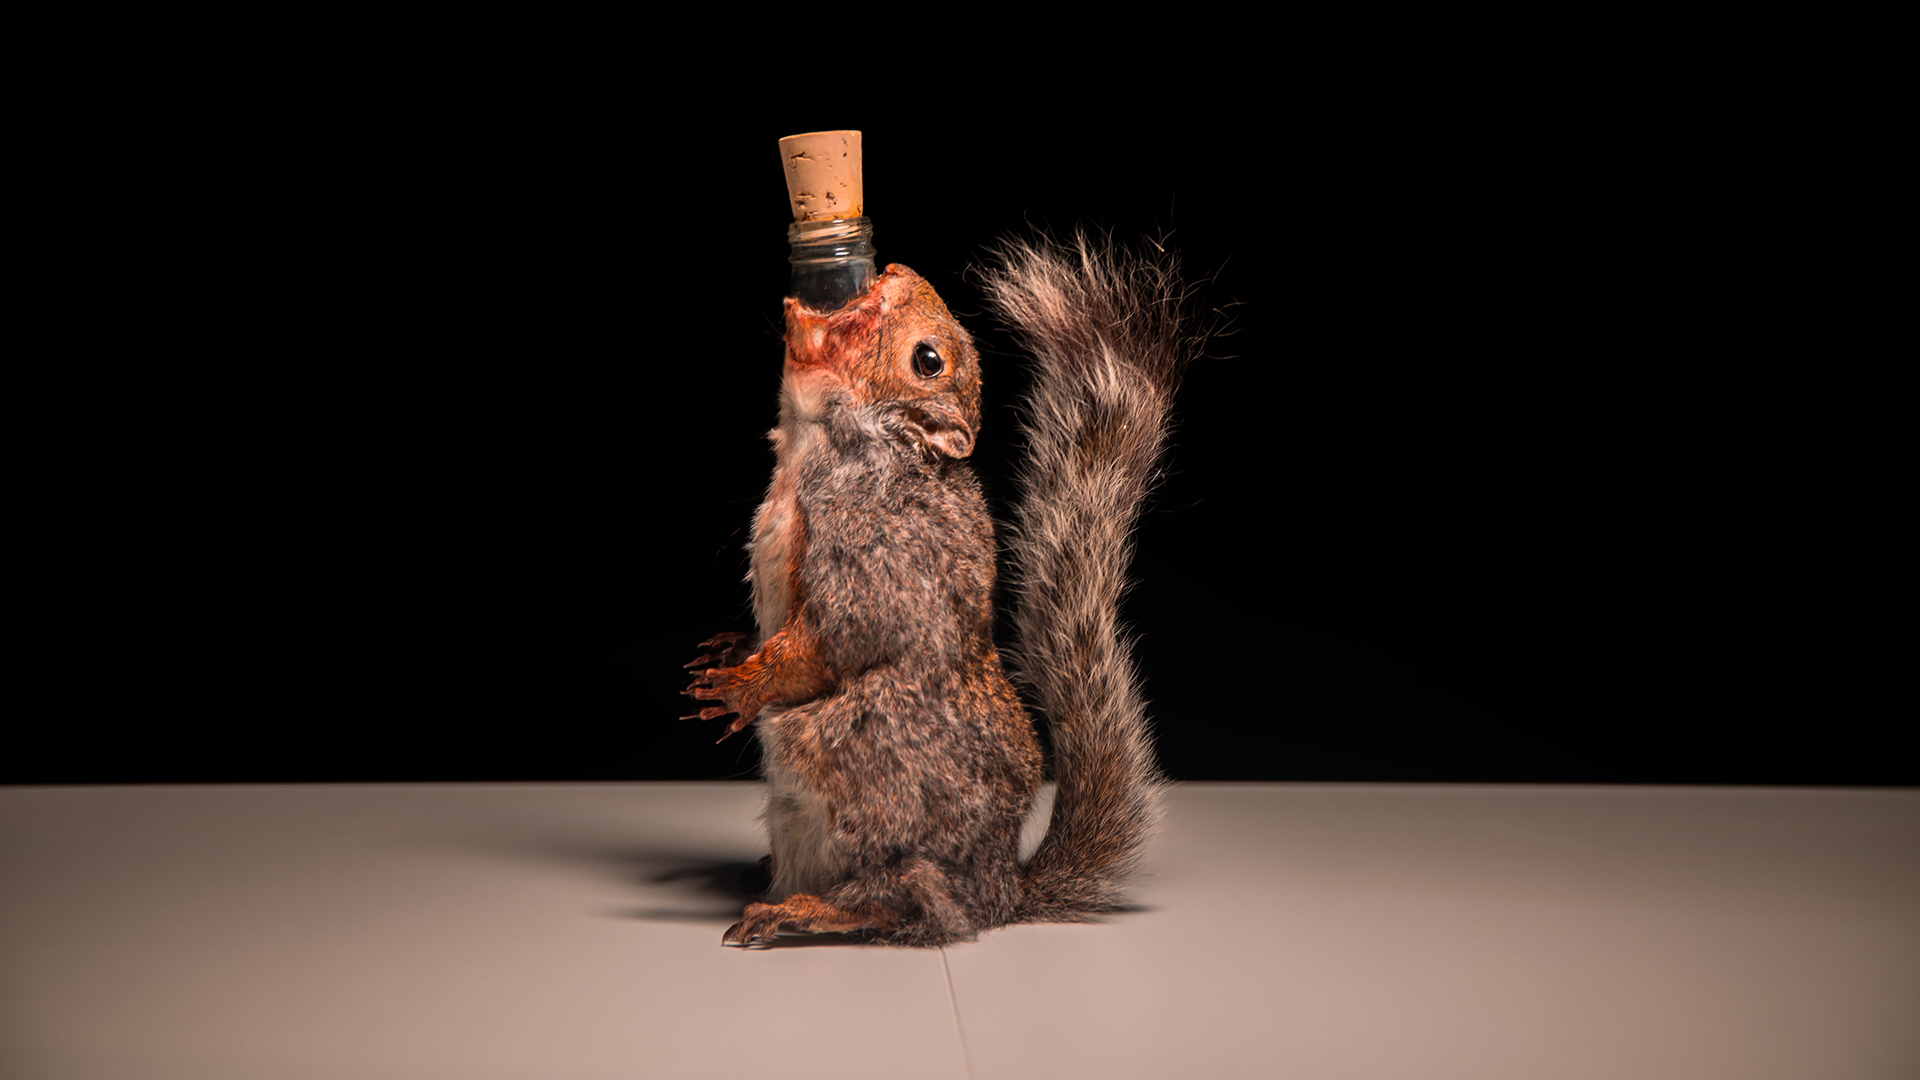 End of History beer is produced by the Scottish brewery BrewDog, and is served inside a dead squirrel.